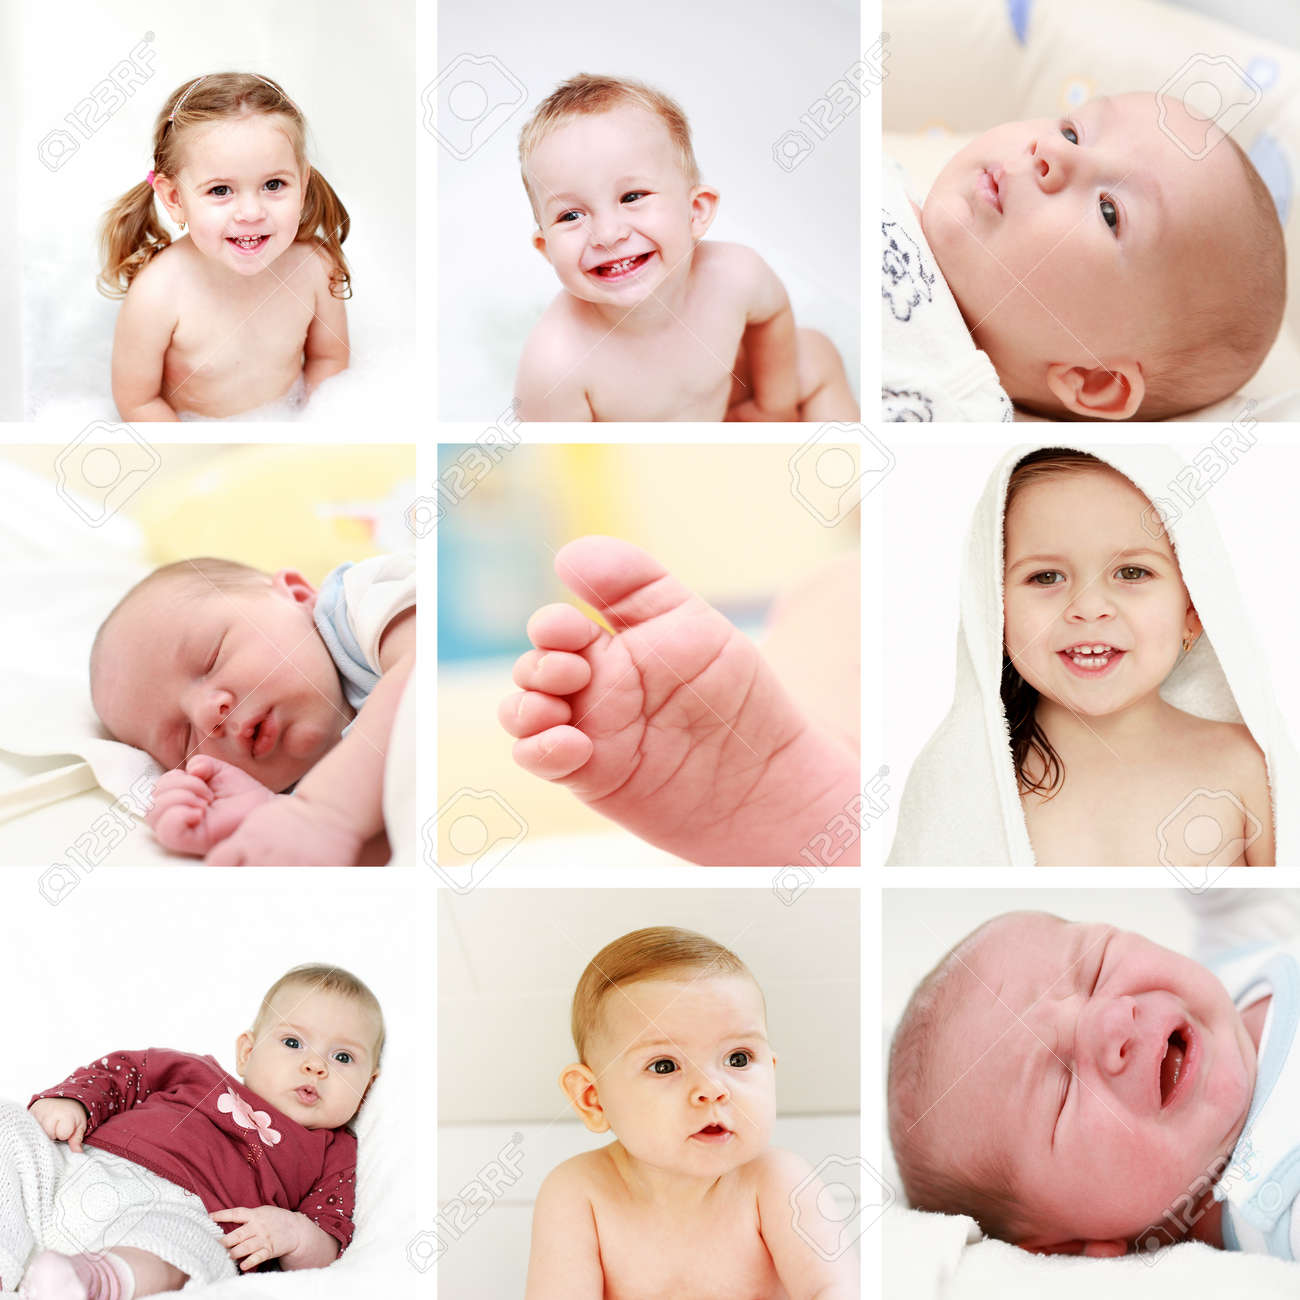 Collage of different photos of babies and kids stock photo 13108294